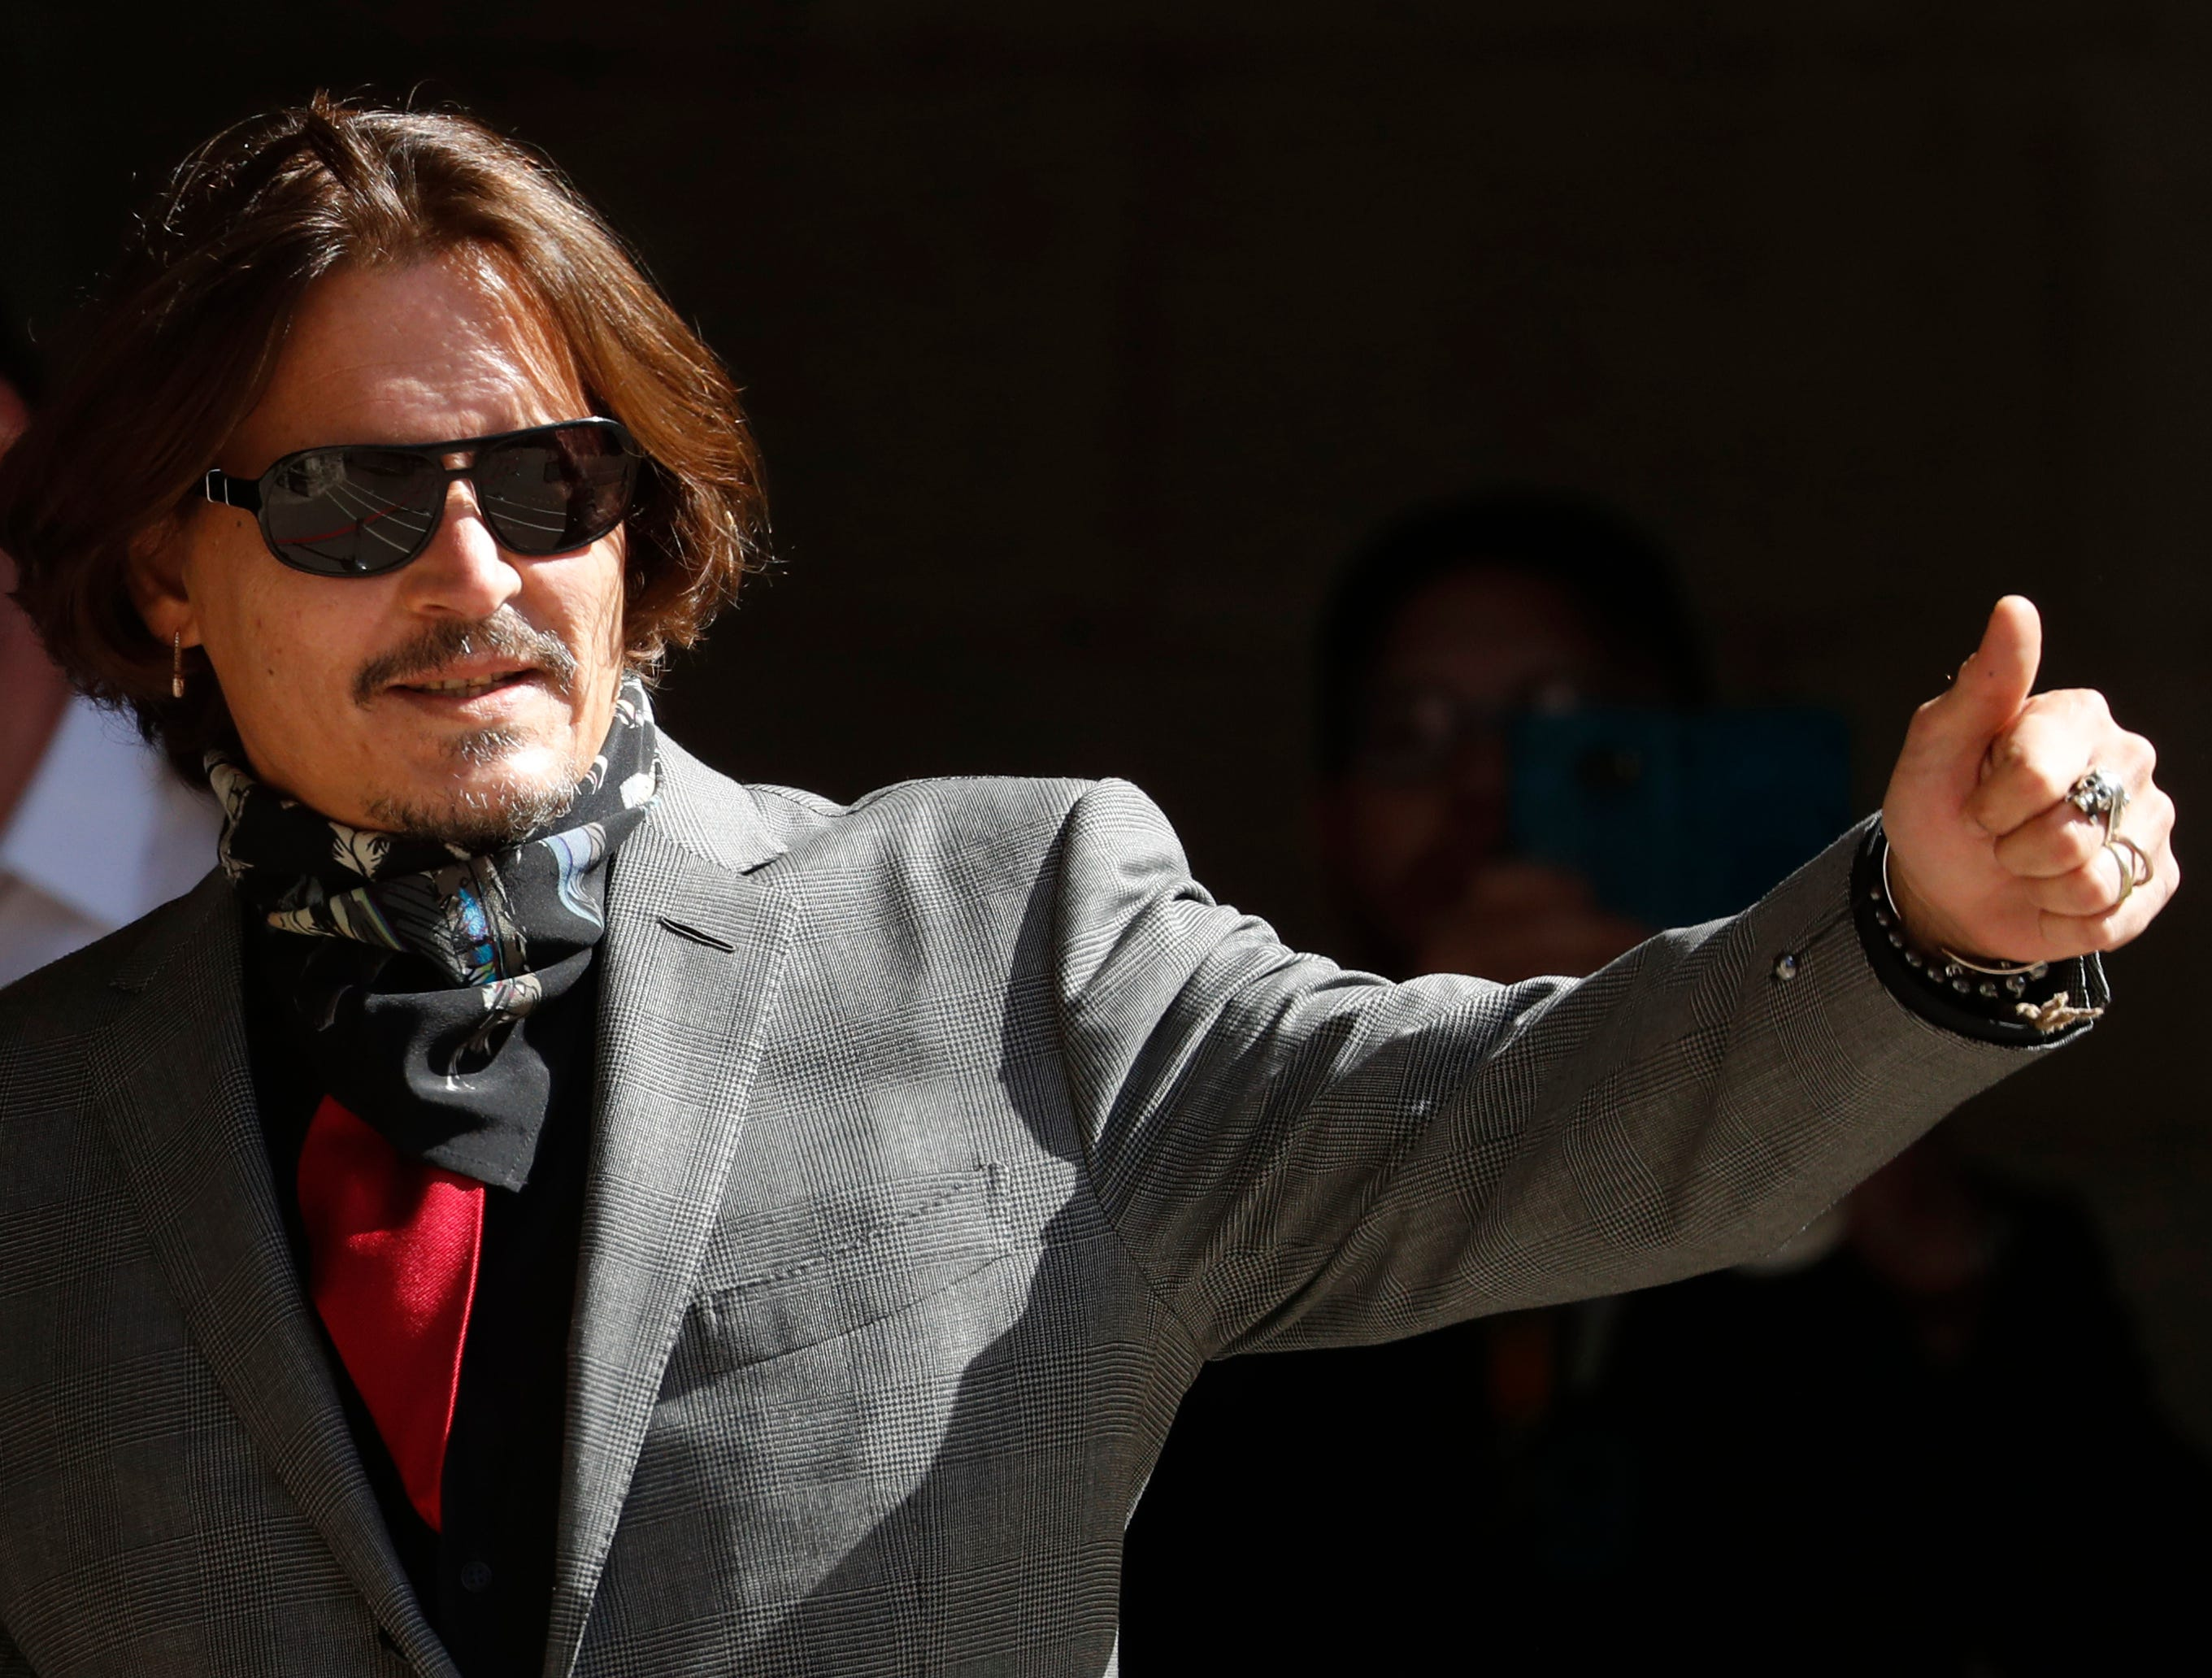 Johnny Depp sends holiday Instagram message wishing for  a better time ahead  after  hard  2020